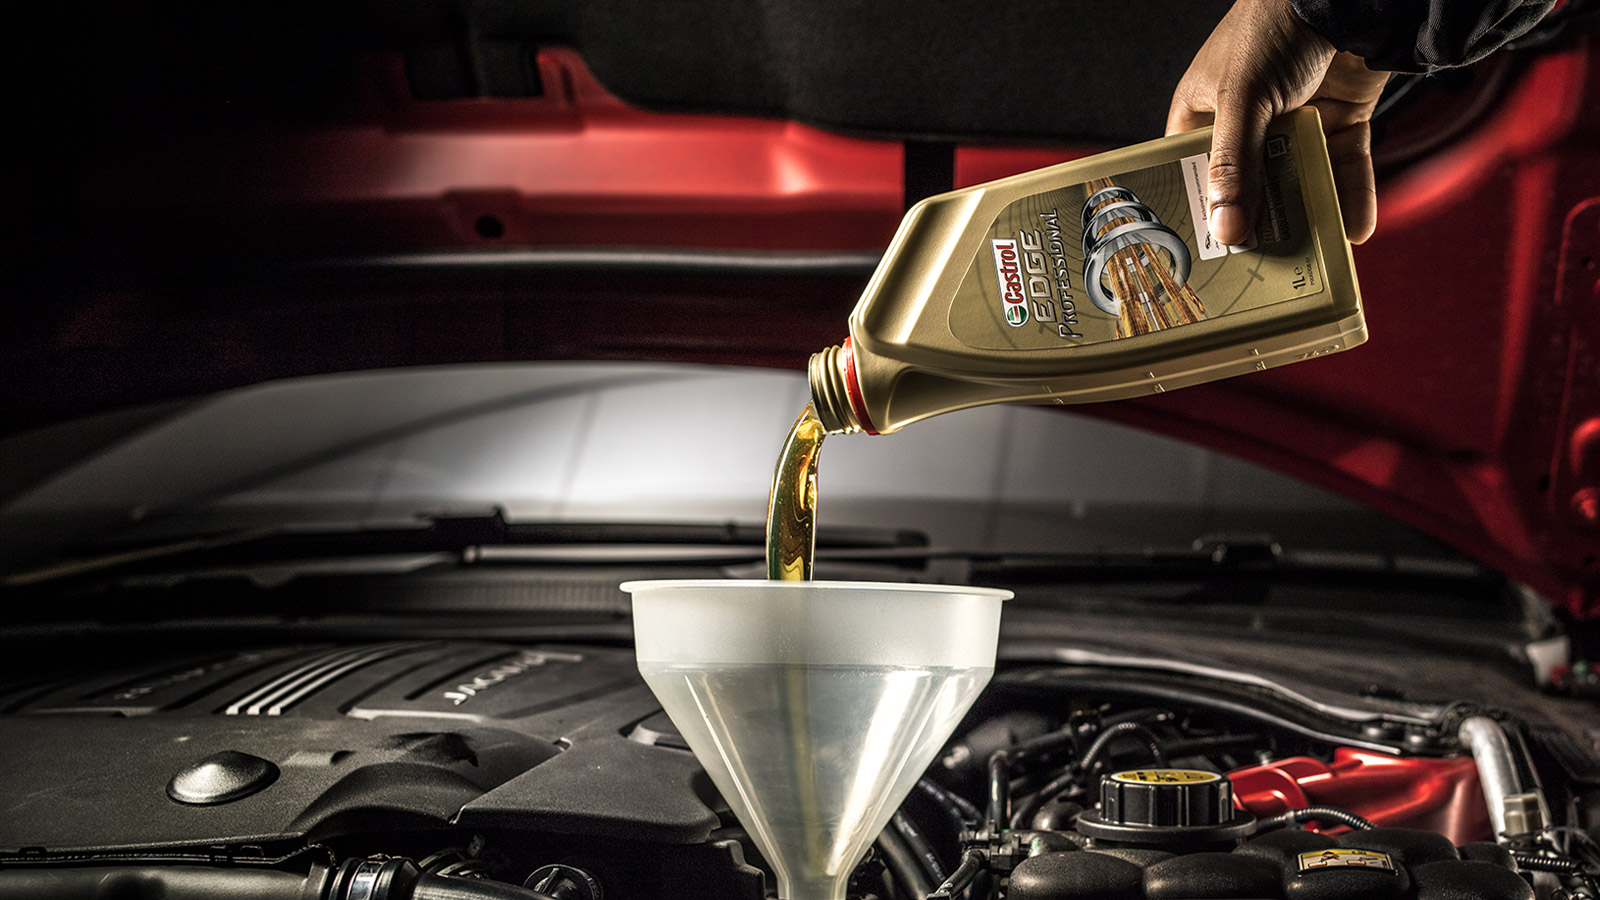 A bottle of Castrol EDGE professional oil being pored into a Jaguar engine.